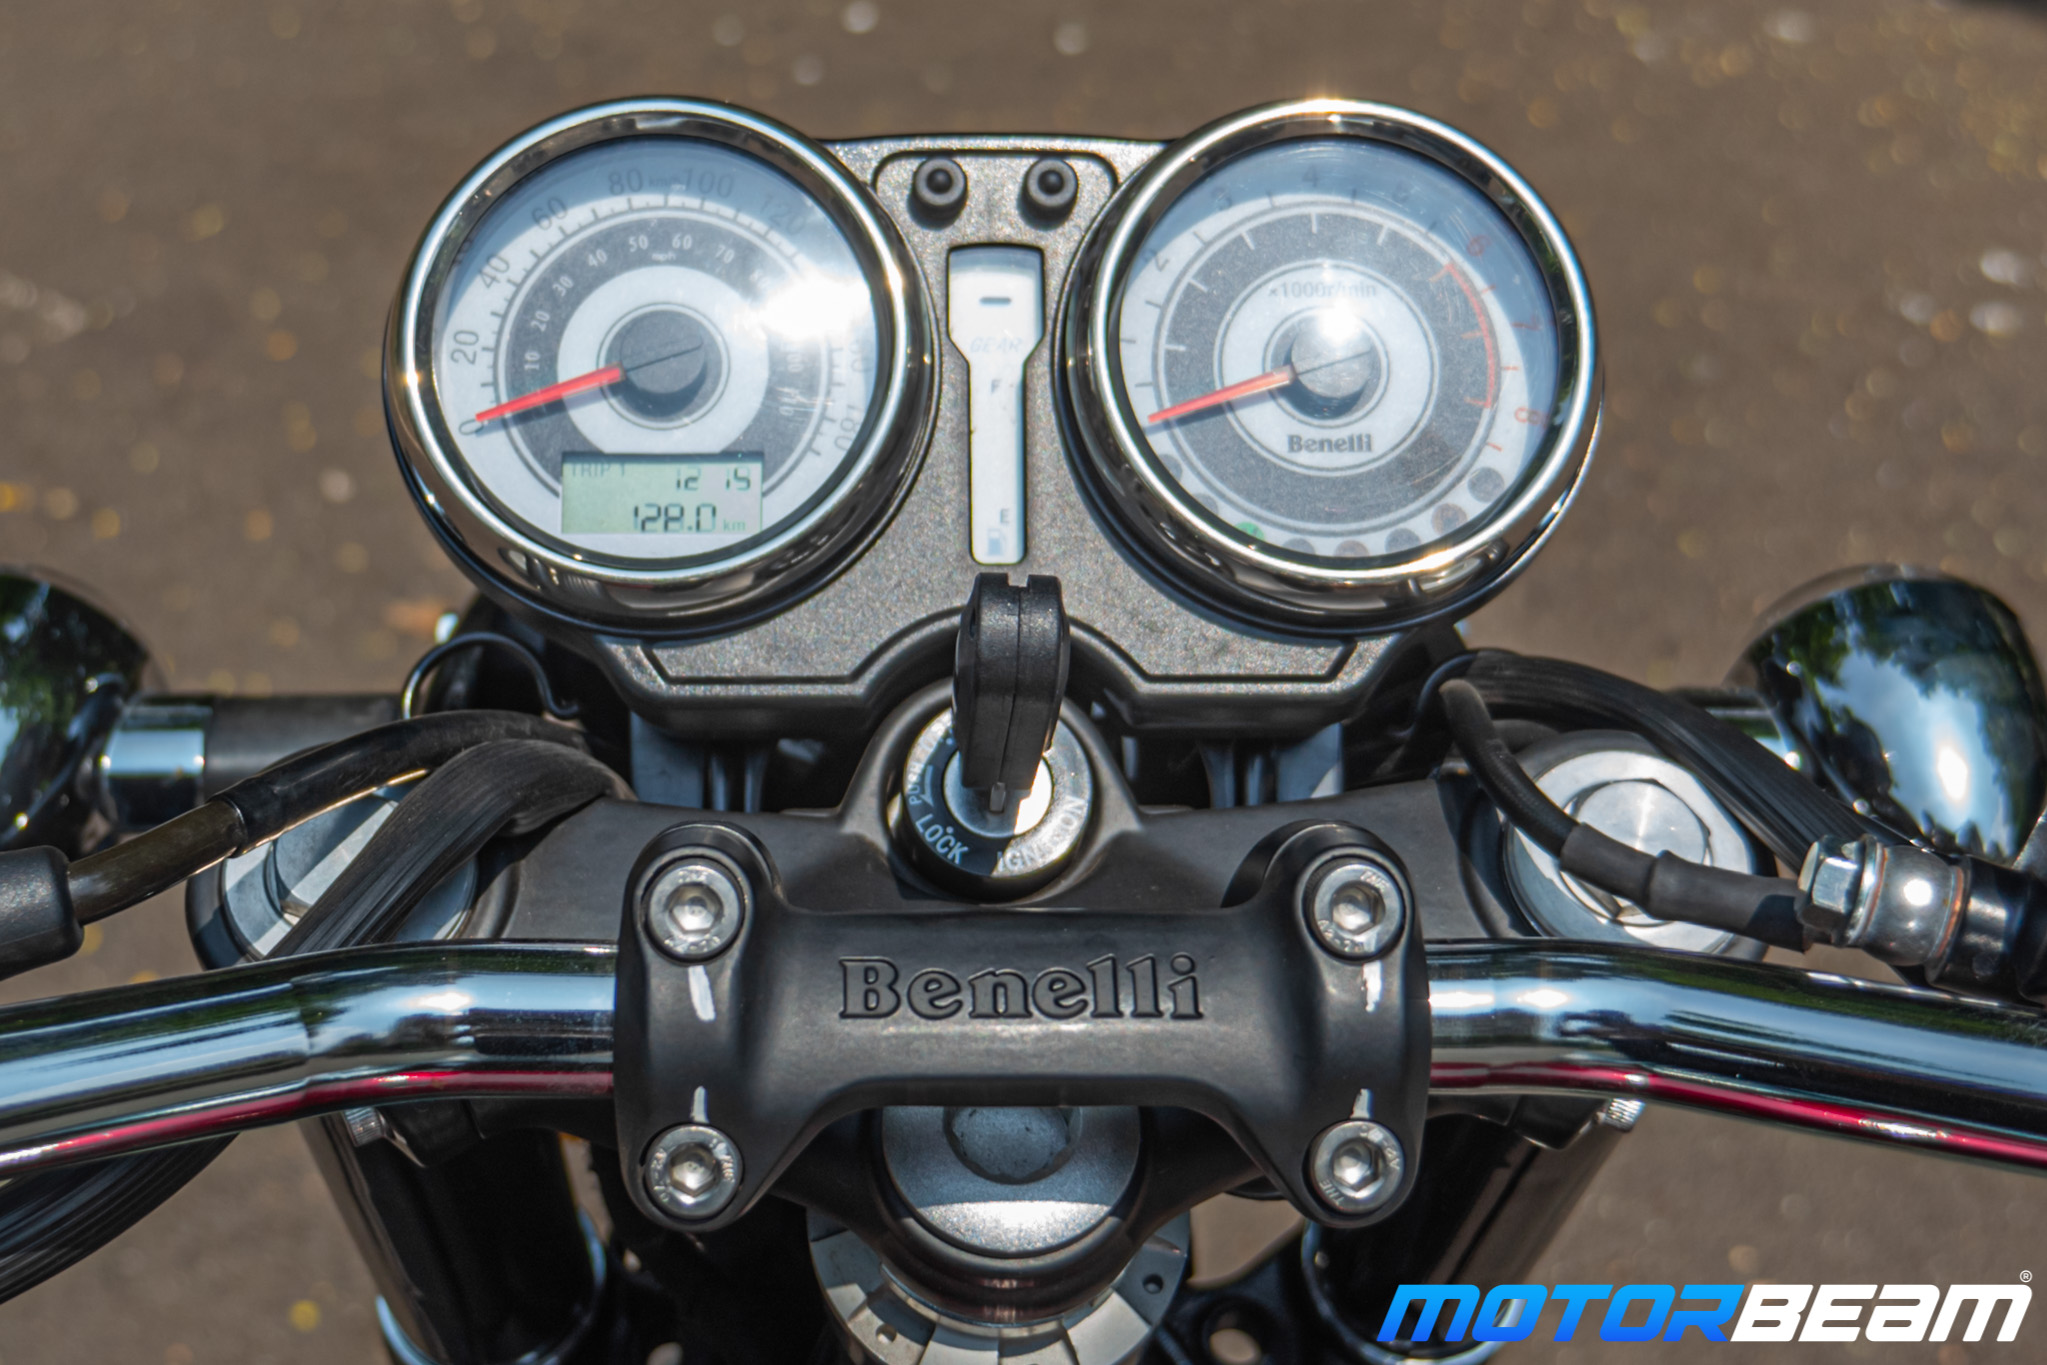 2020 Benelli Imperiale 400 Review 23